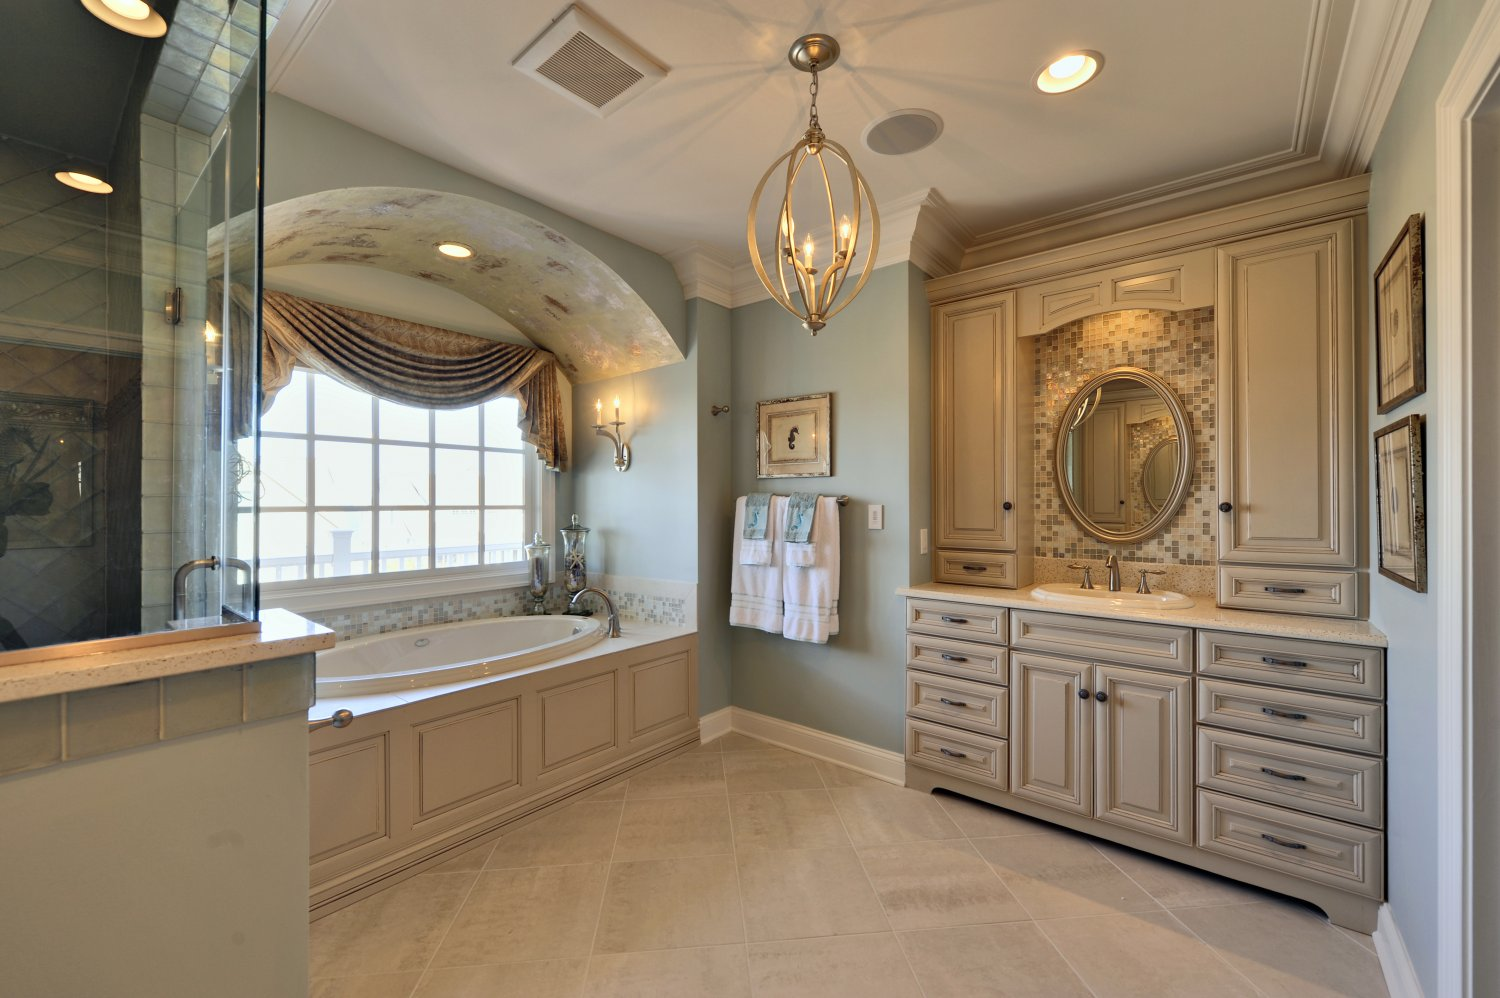 Cape shores photo gallery of custom delaware new homes for Master bathroom design ideas